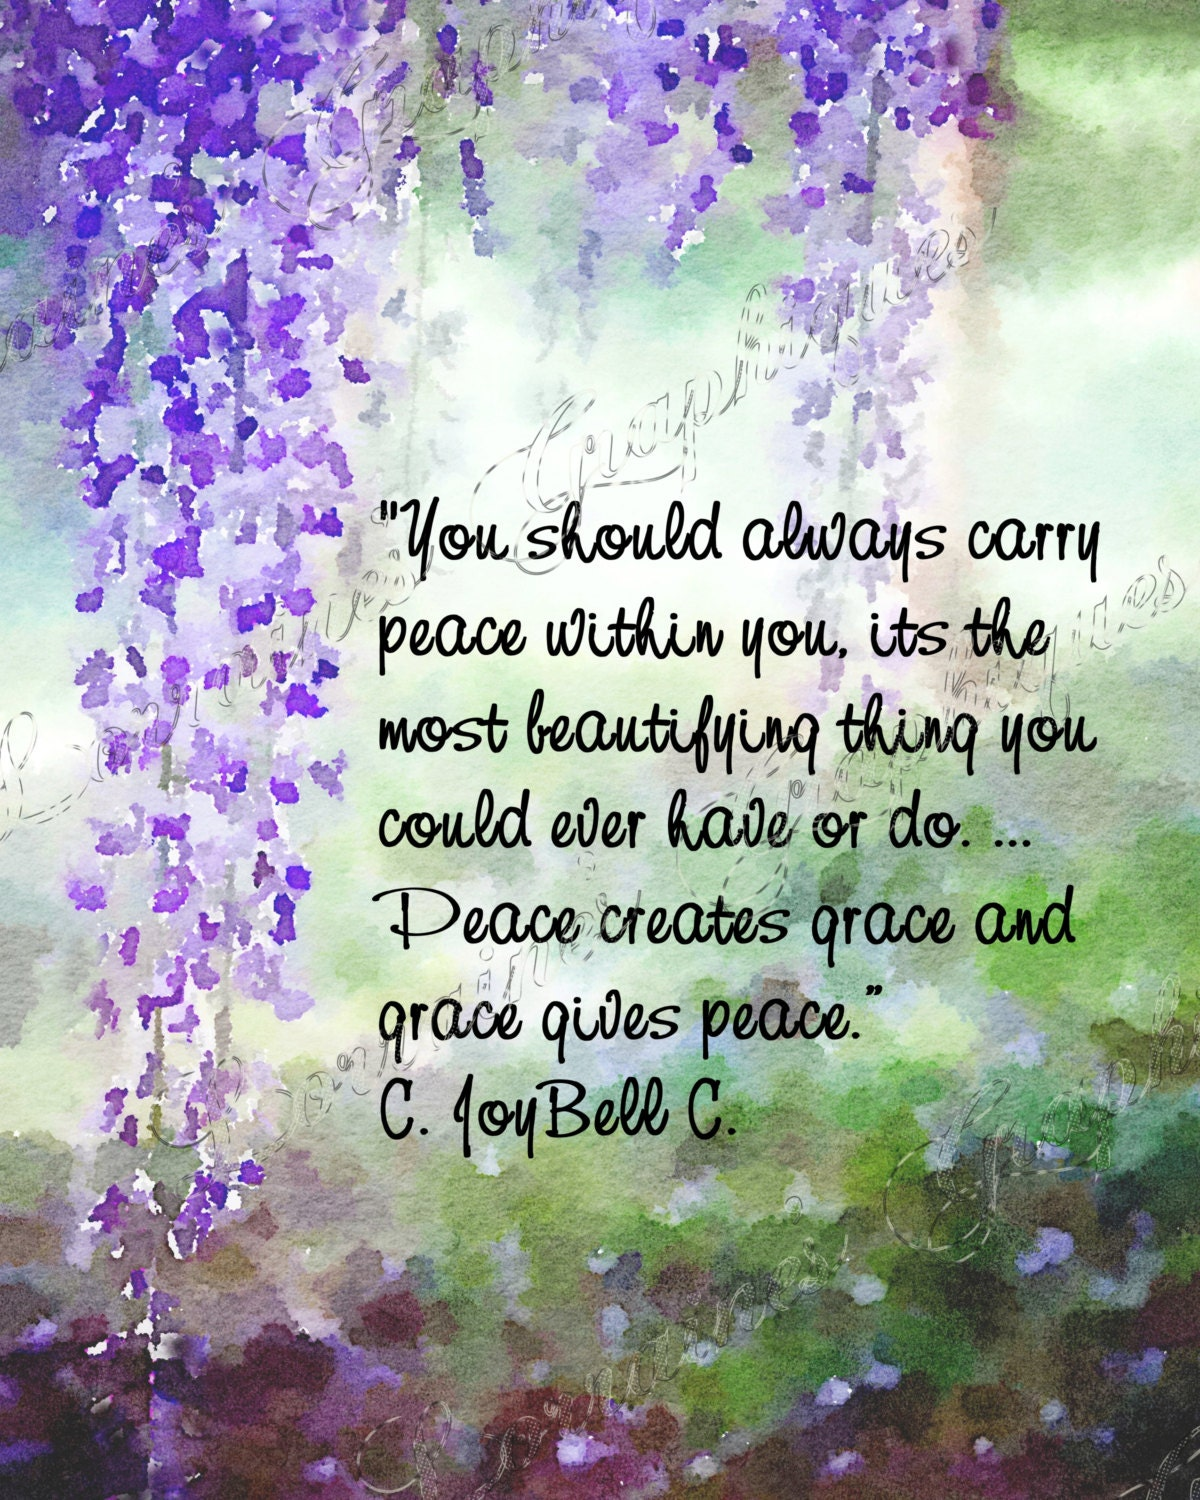 inner peace a wisteria watercolor fine art reproduction print with a c joybell cquote